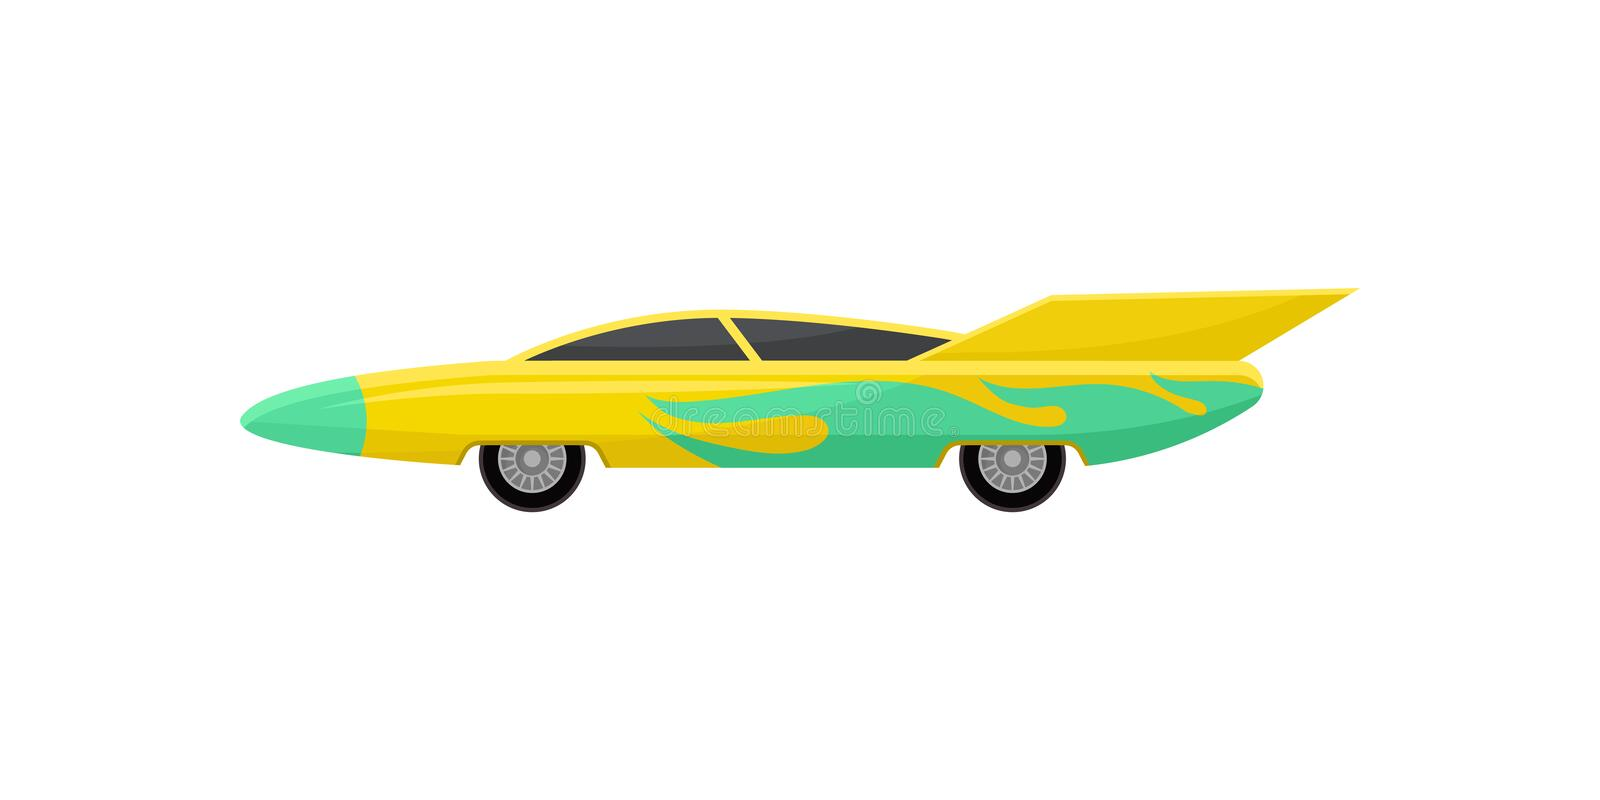 Flat vector icon of bright yellow racing car with green wrap decal, side view. Fast sports vehicle with tinted windows stock illustration